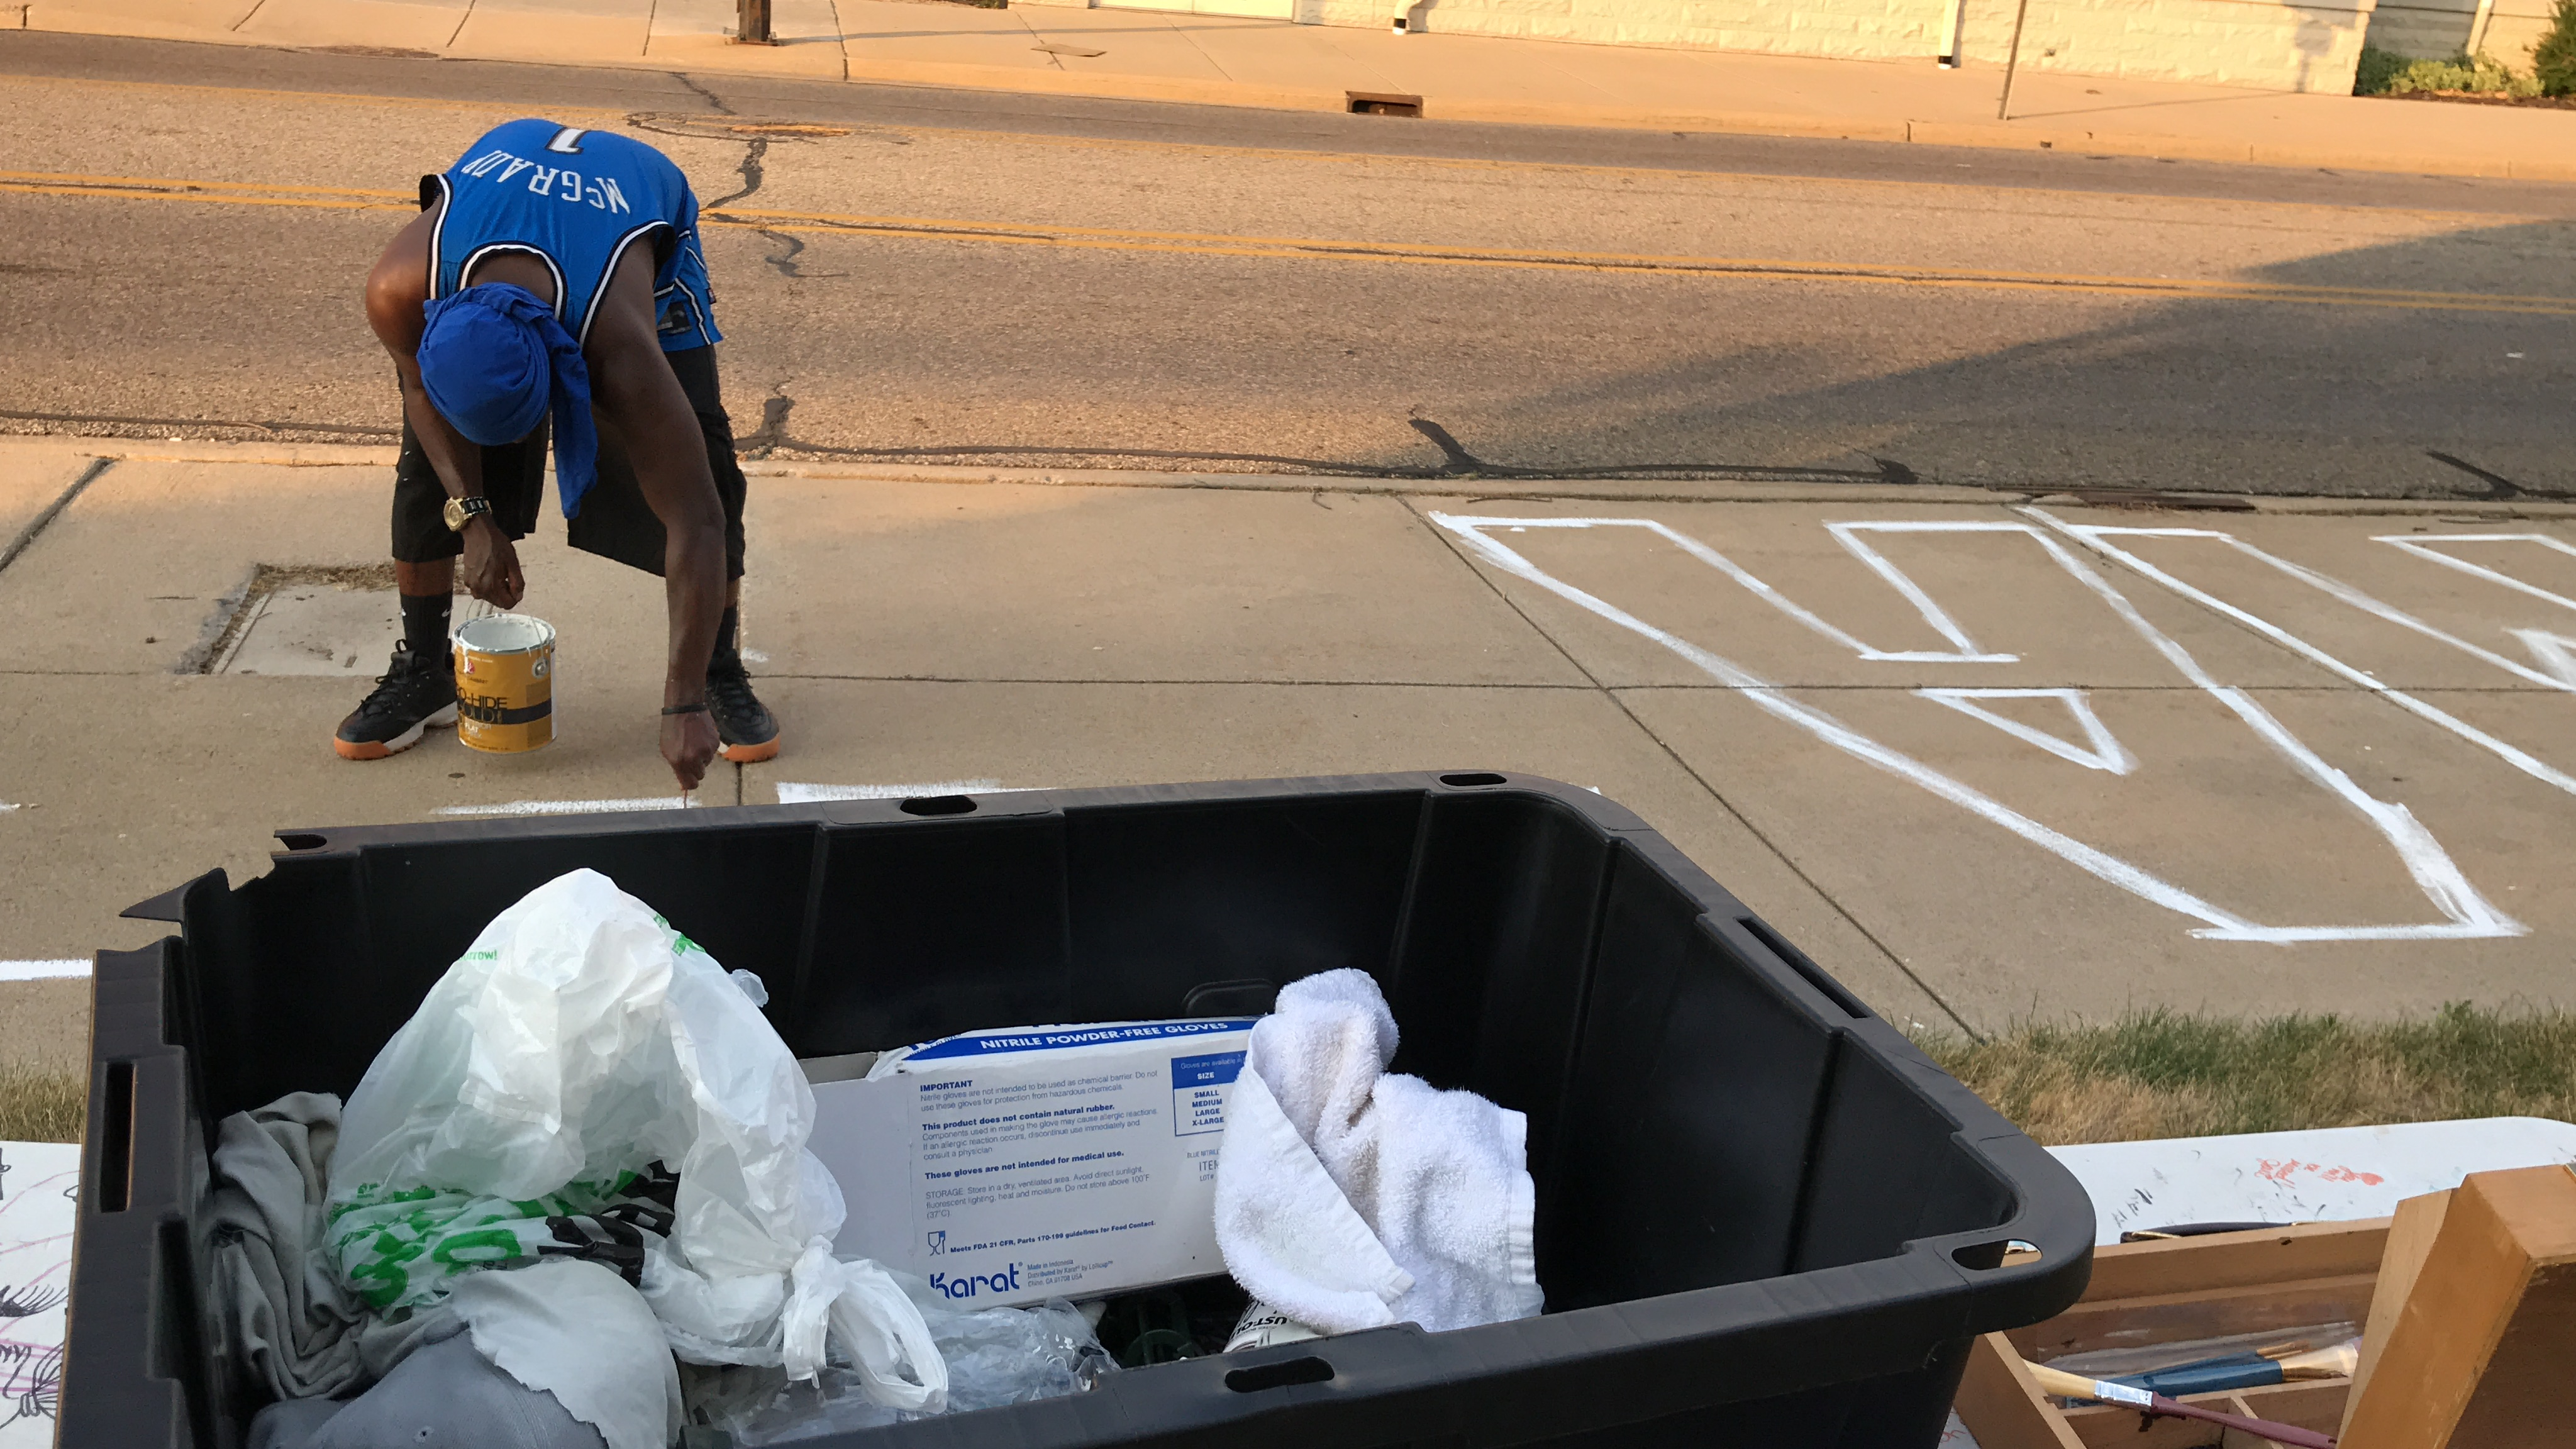 Gerald King of Battle Creek works on the letter T in the word matter, as several of his supplies await nearby for the next portion of the sidewalk mural project in Battle Creek, Michigan, on Tuesday, July 7, 2020. (WWMT/Jason Heeres)